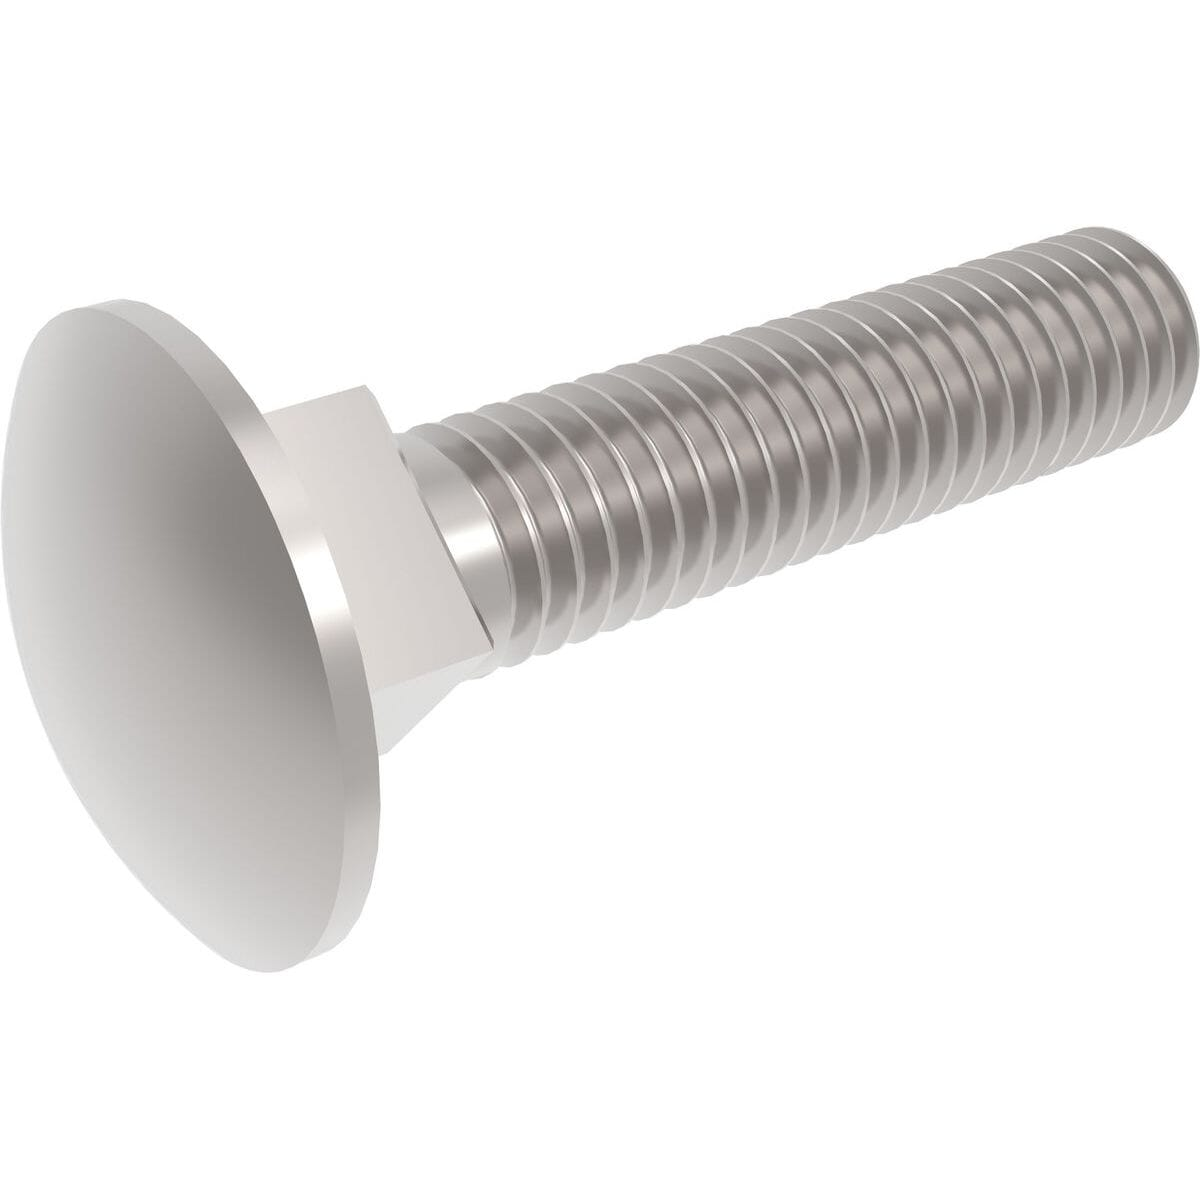 M12 x 150mm Full Thread Carriage Bolts (DIN 603) - Marine Stainless Steel (A4)